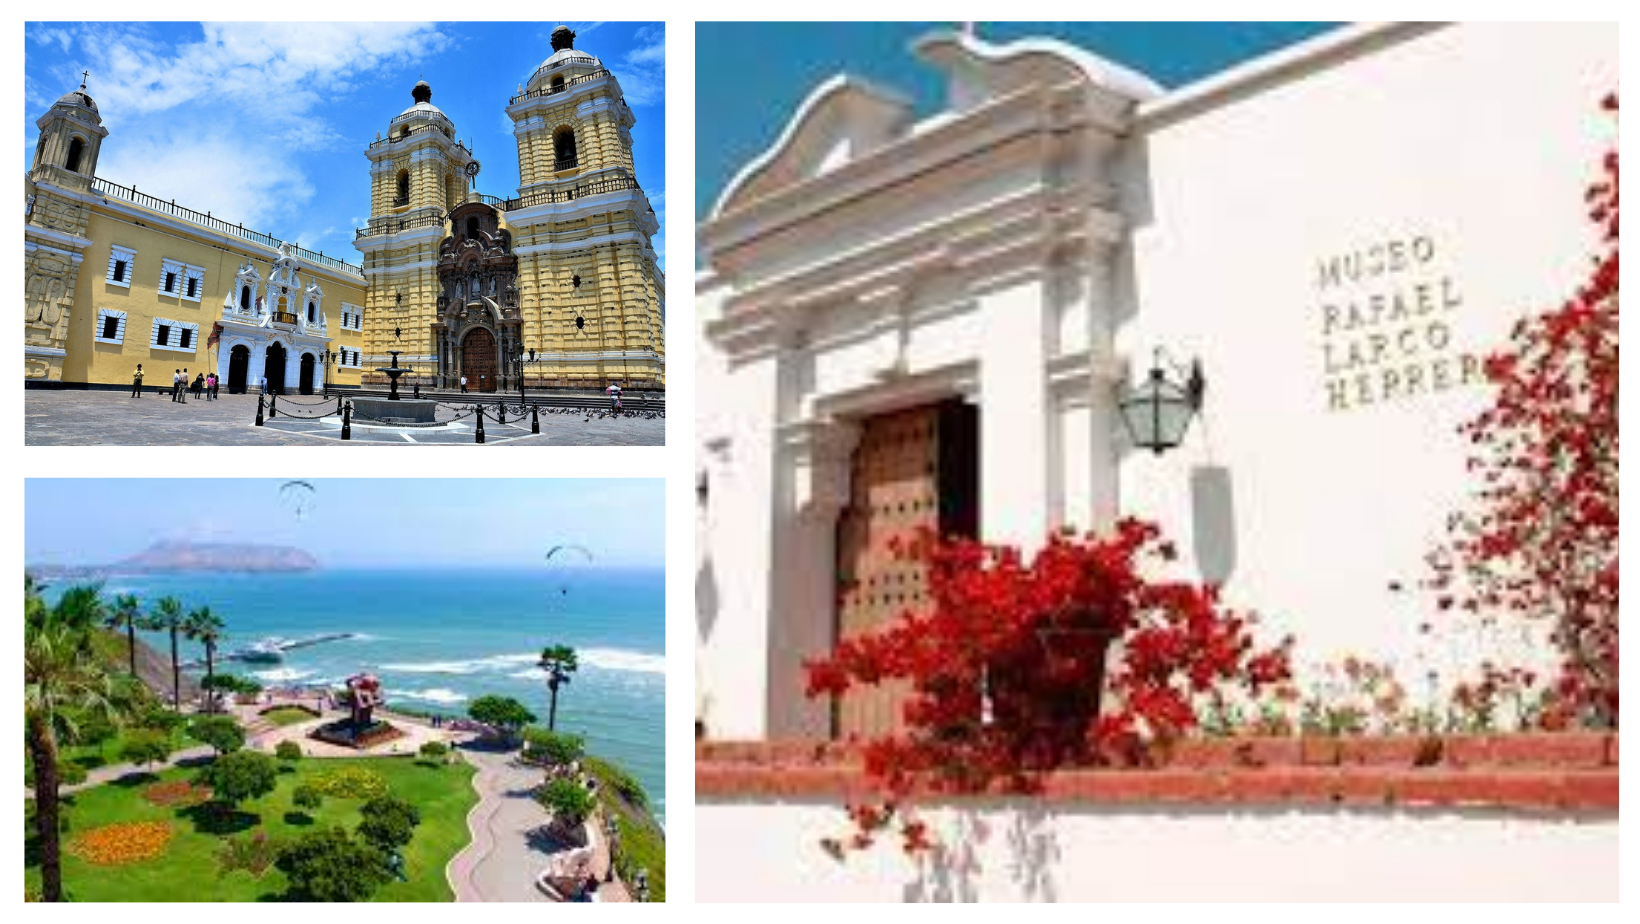 FULL DAY TRIP HISTORICAL LIMA